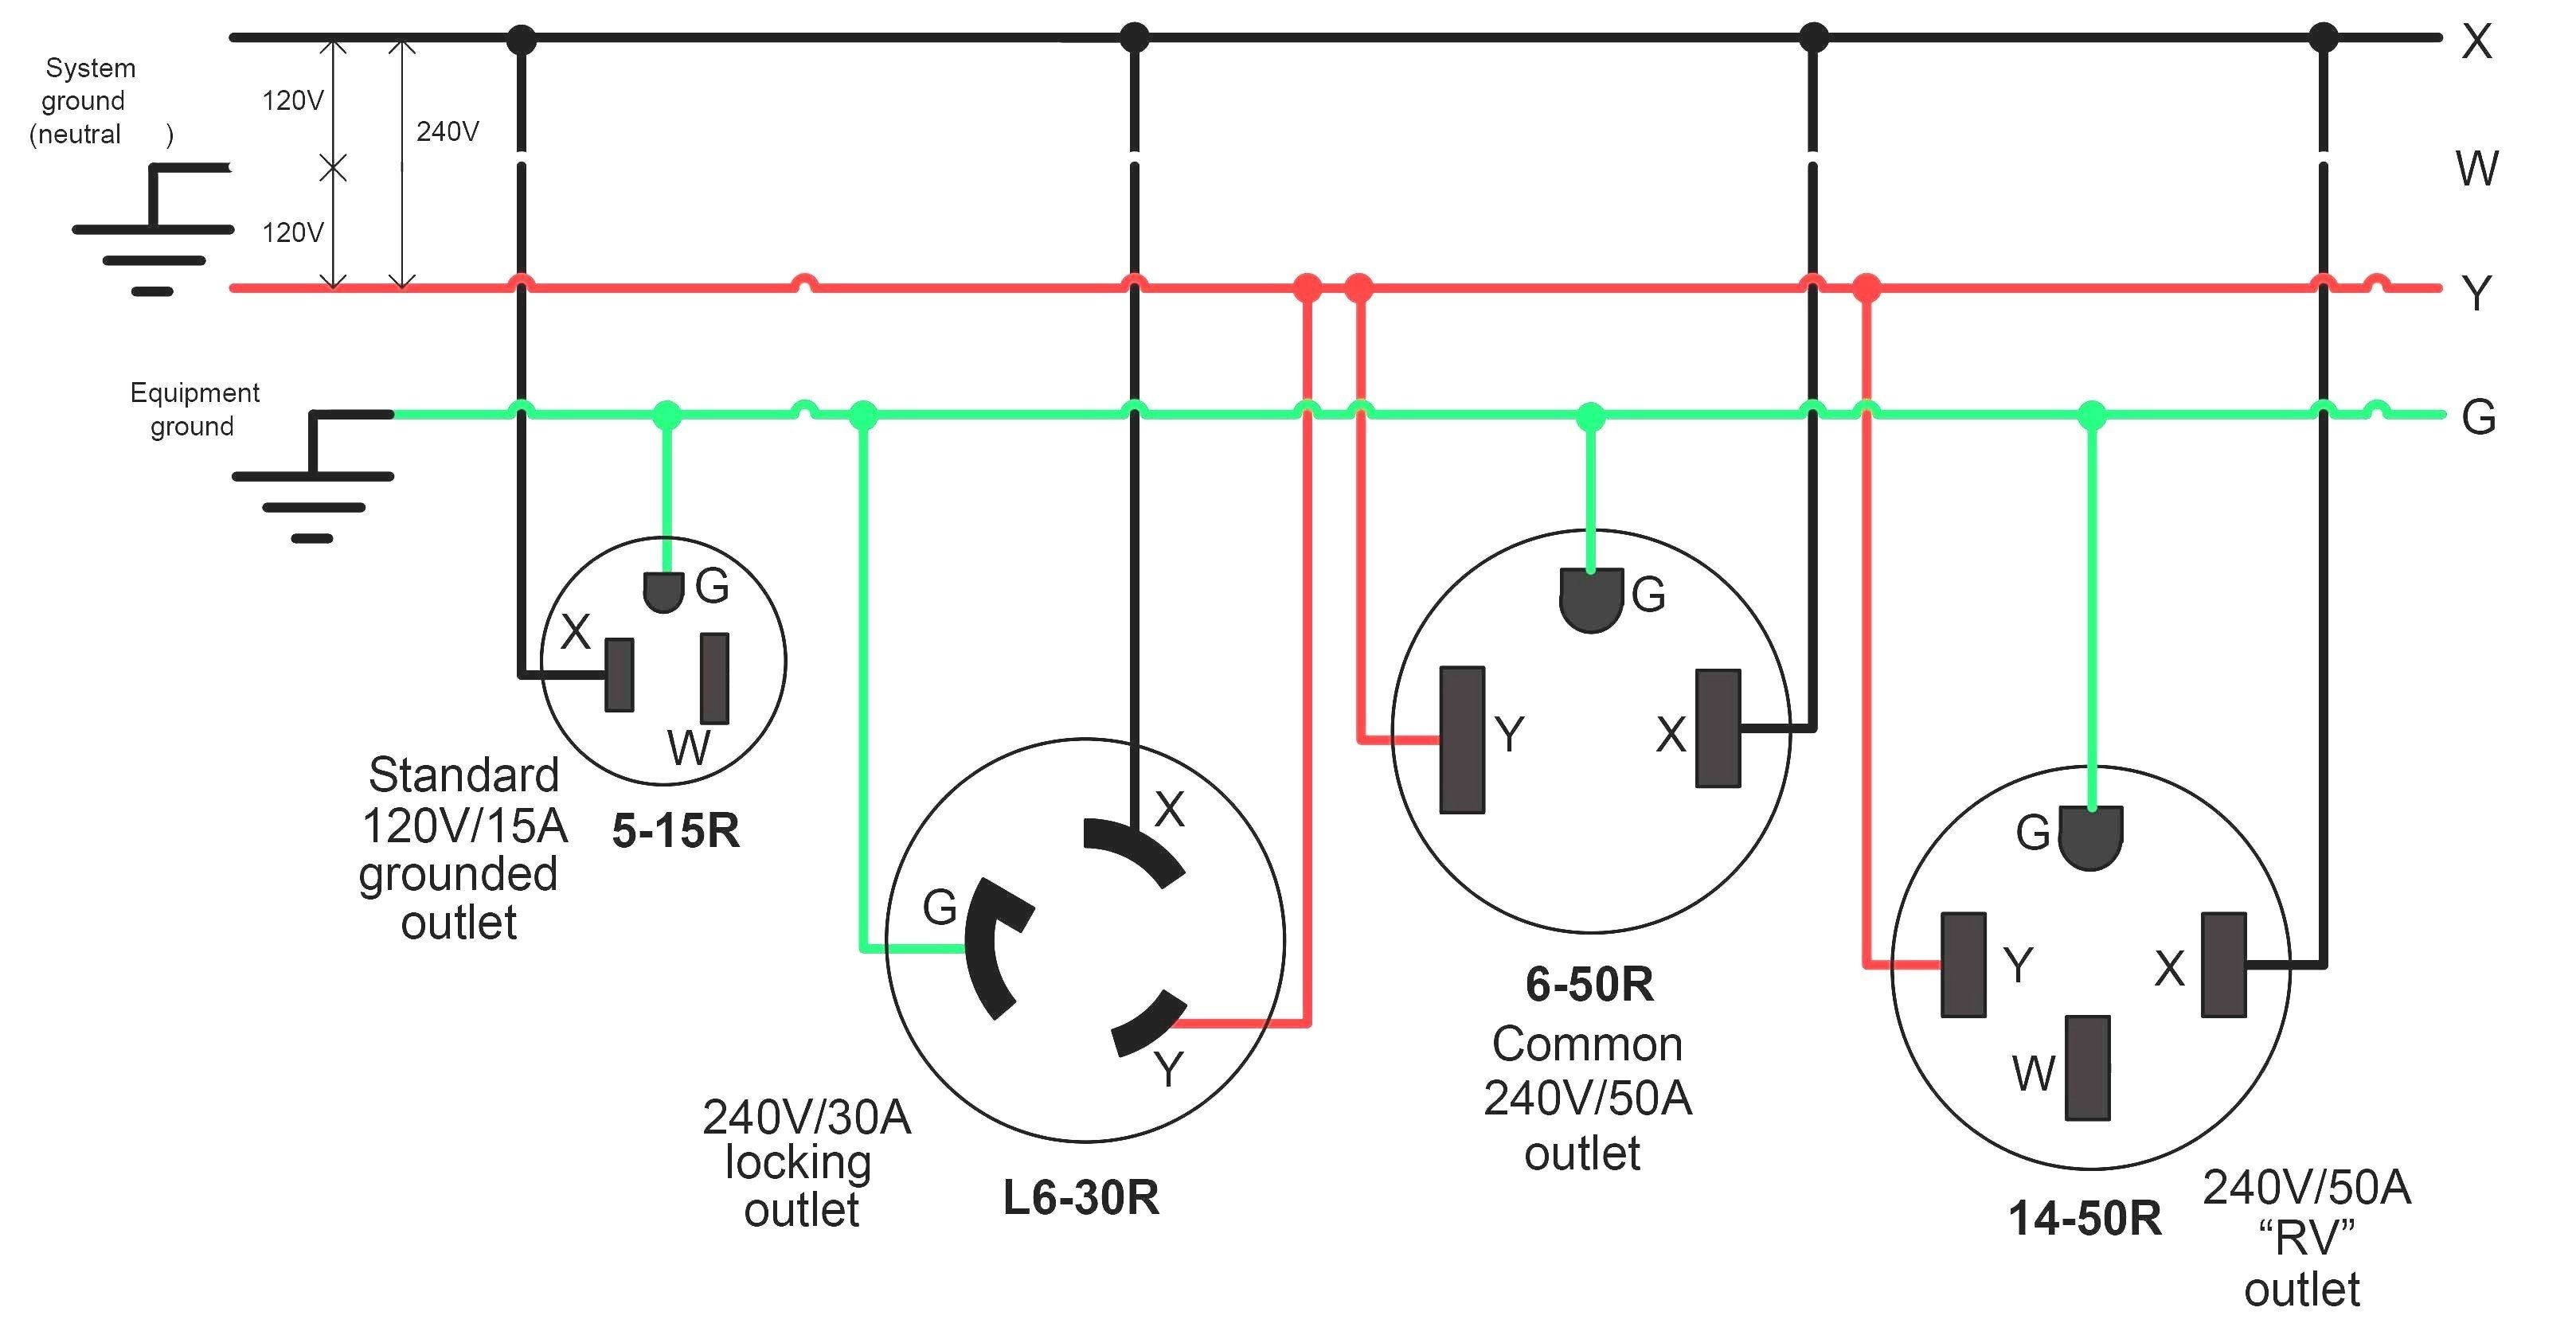 [FPER_4992]  WRG-1635] 208 Volt Single Phase Wiring Diagra | 208 Volt Plug Wiring Diagram |  | mx.tl